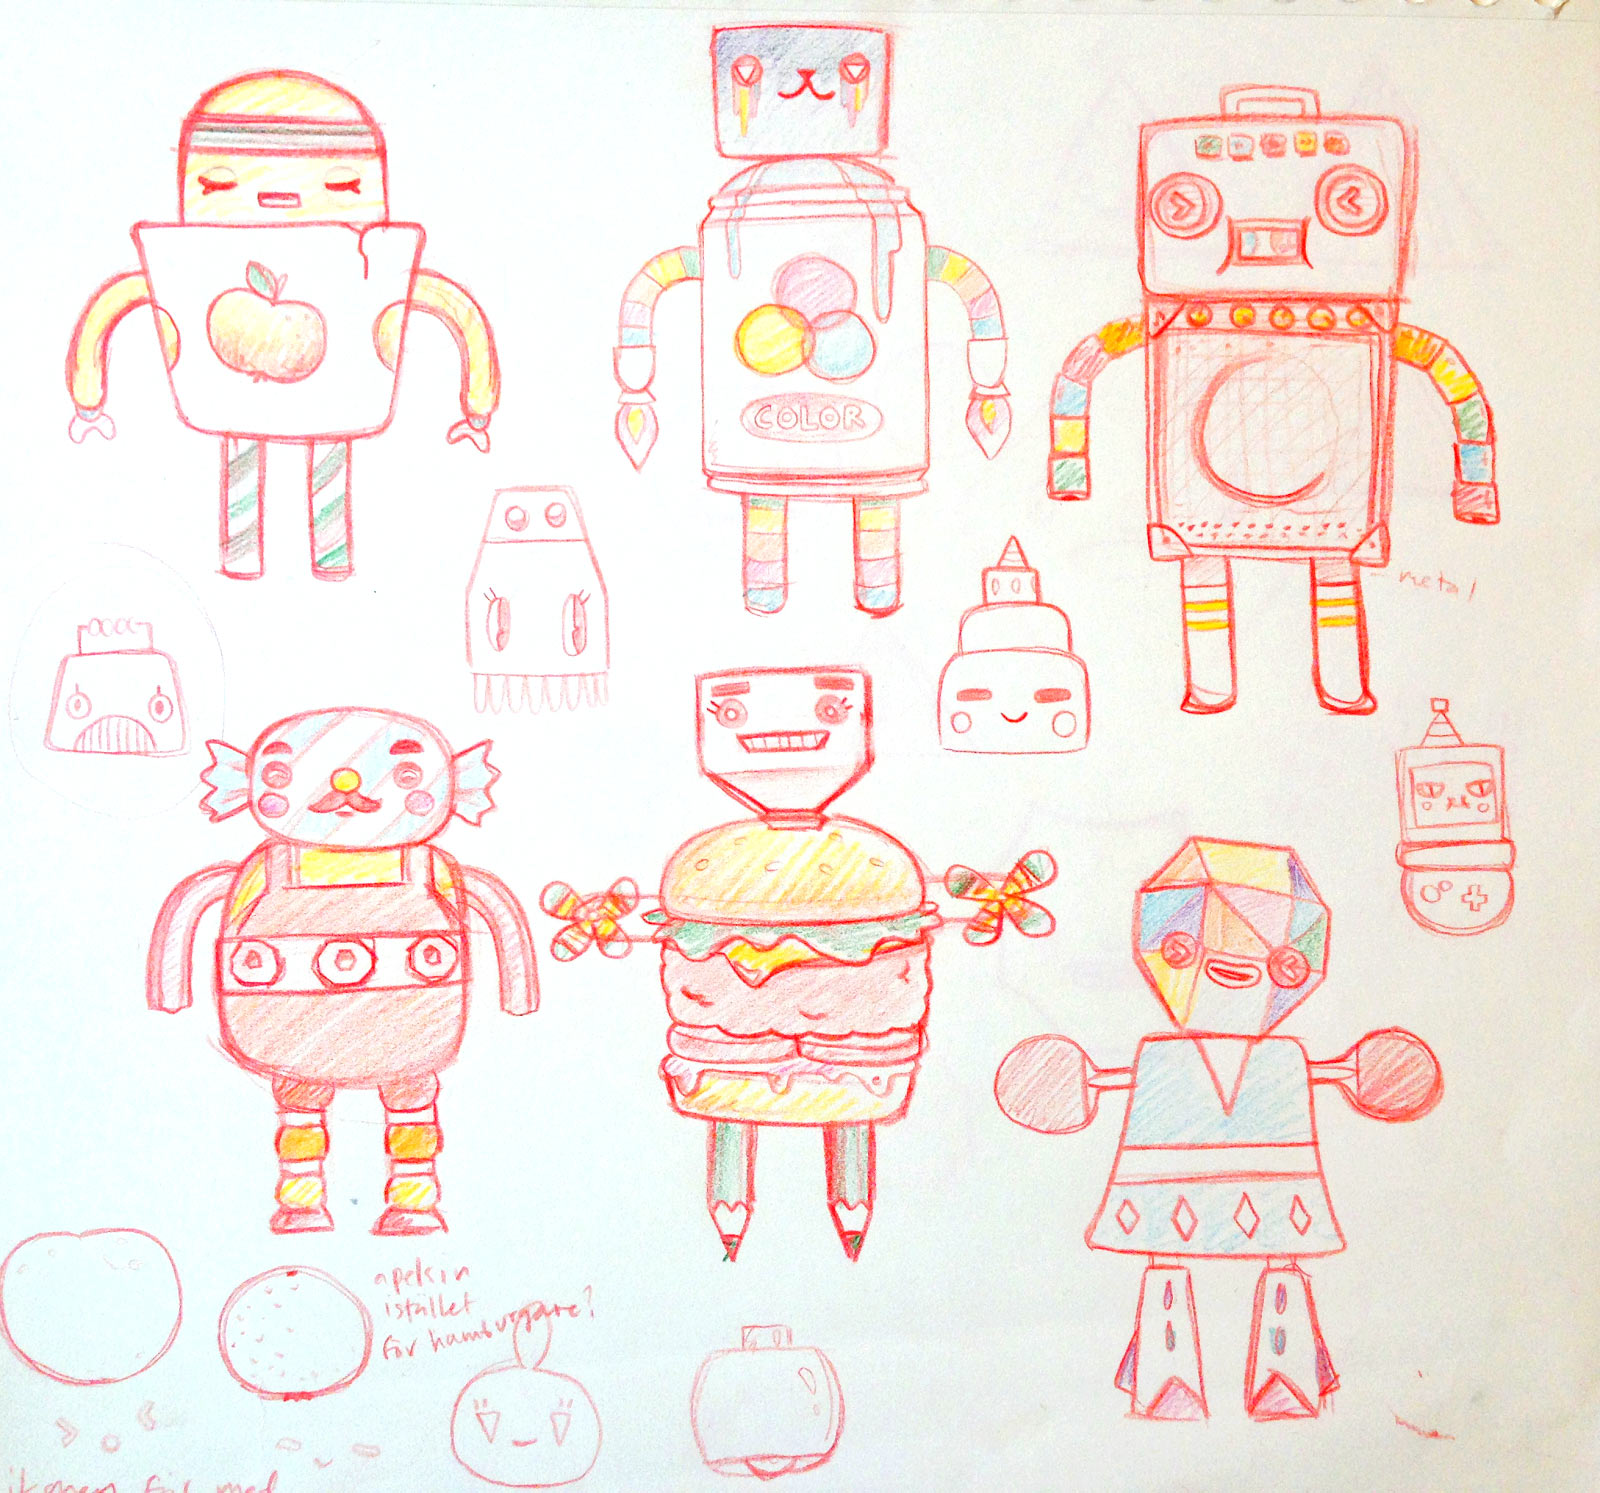 Redesigning Toca Robot Lab to be gender neutral.